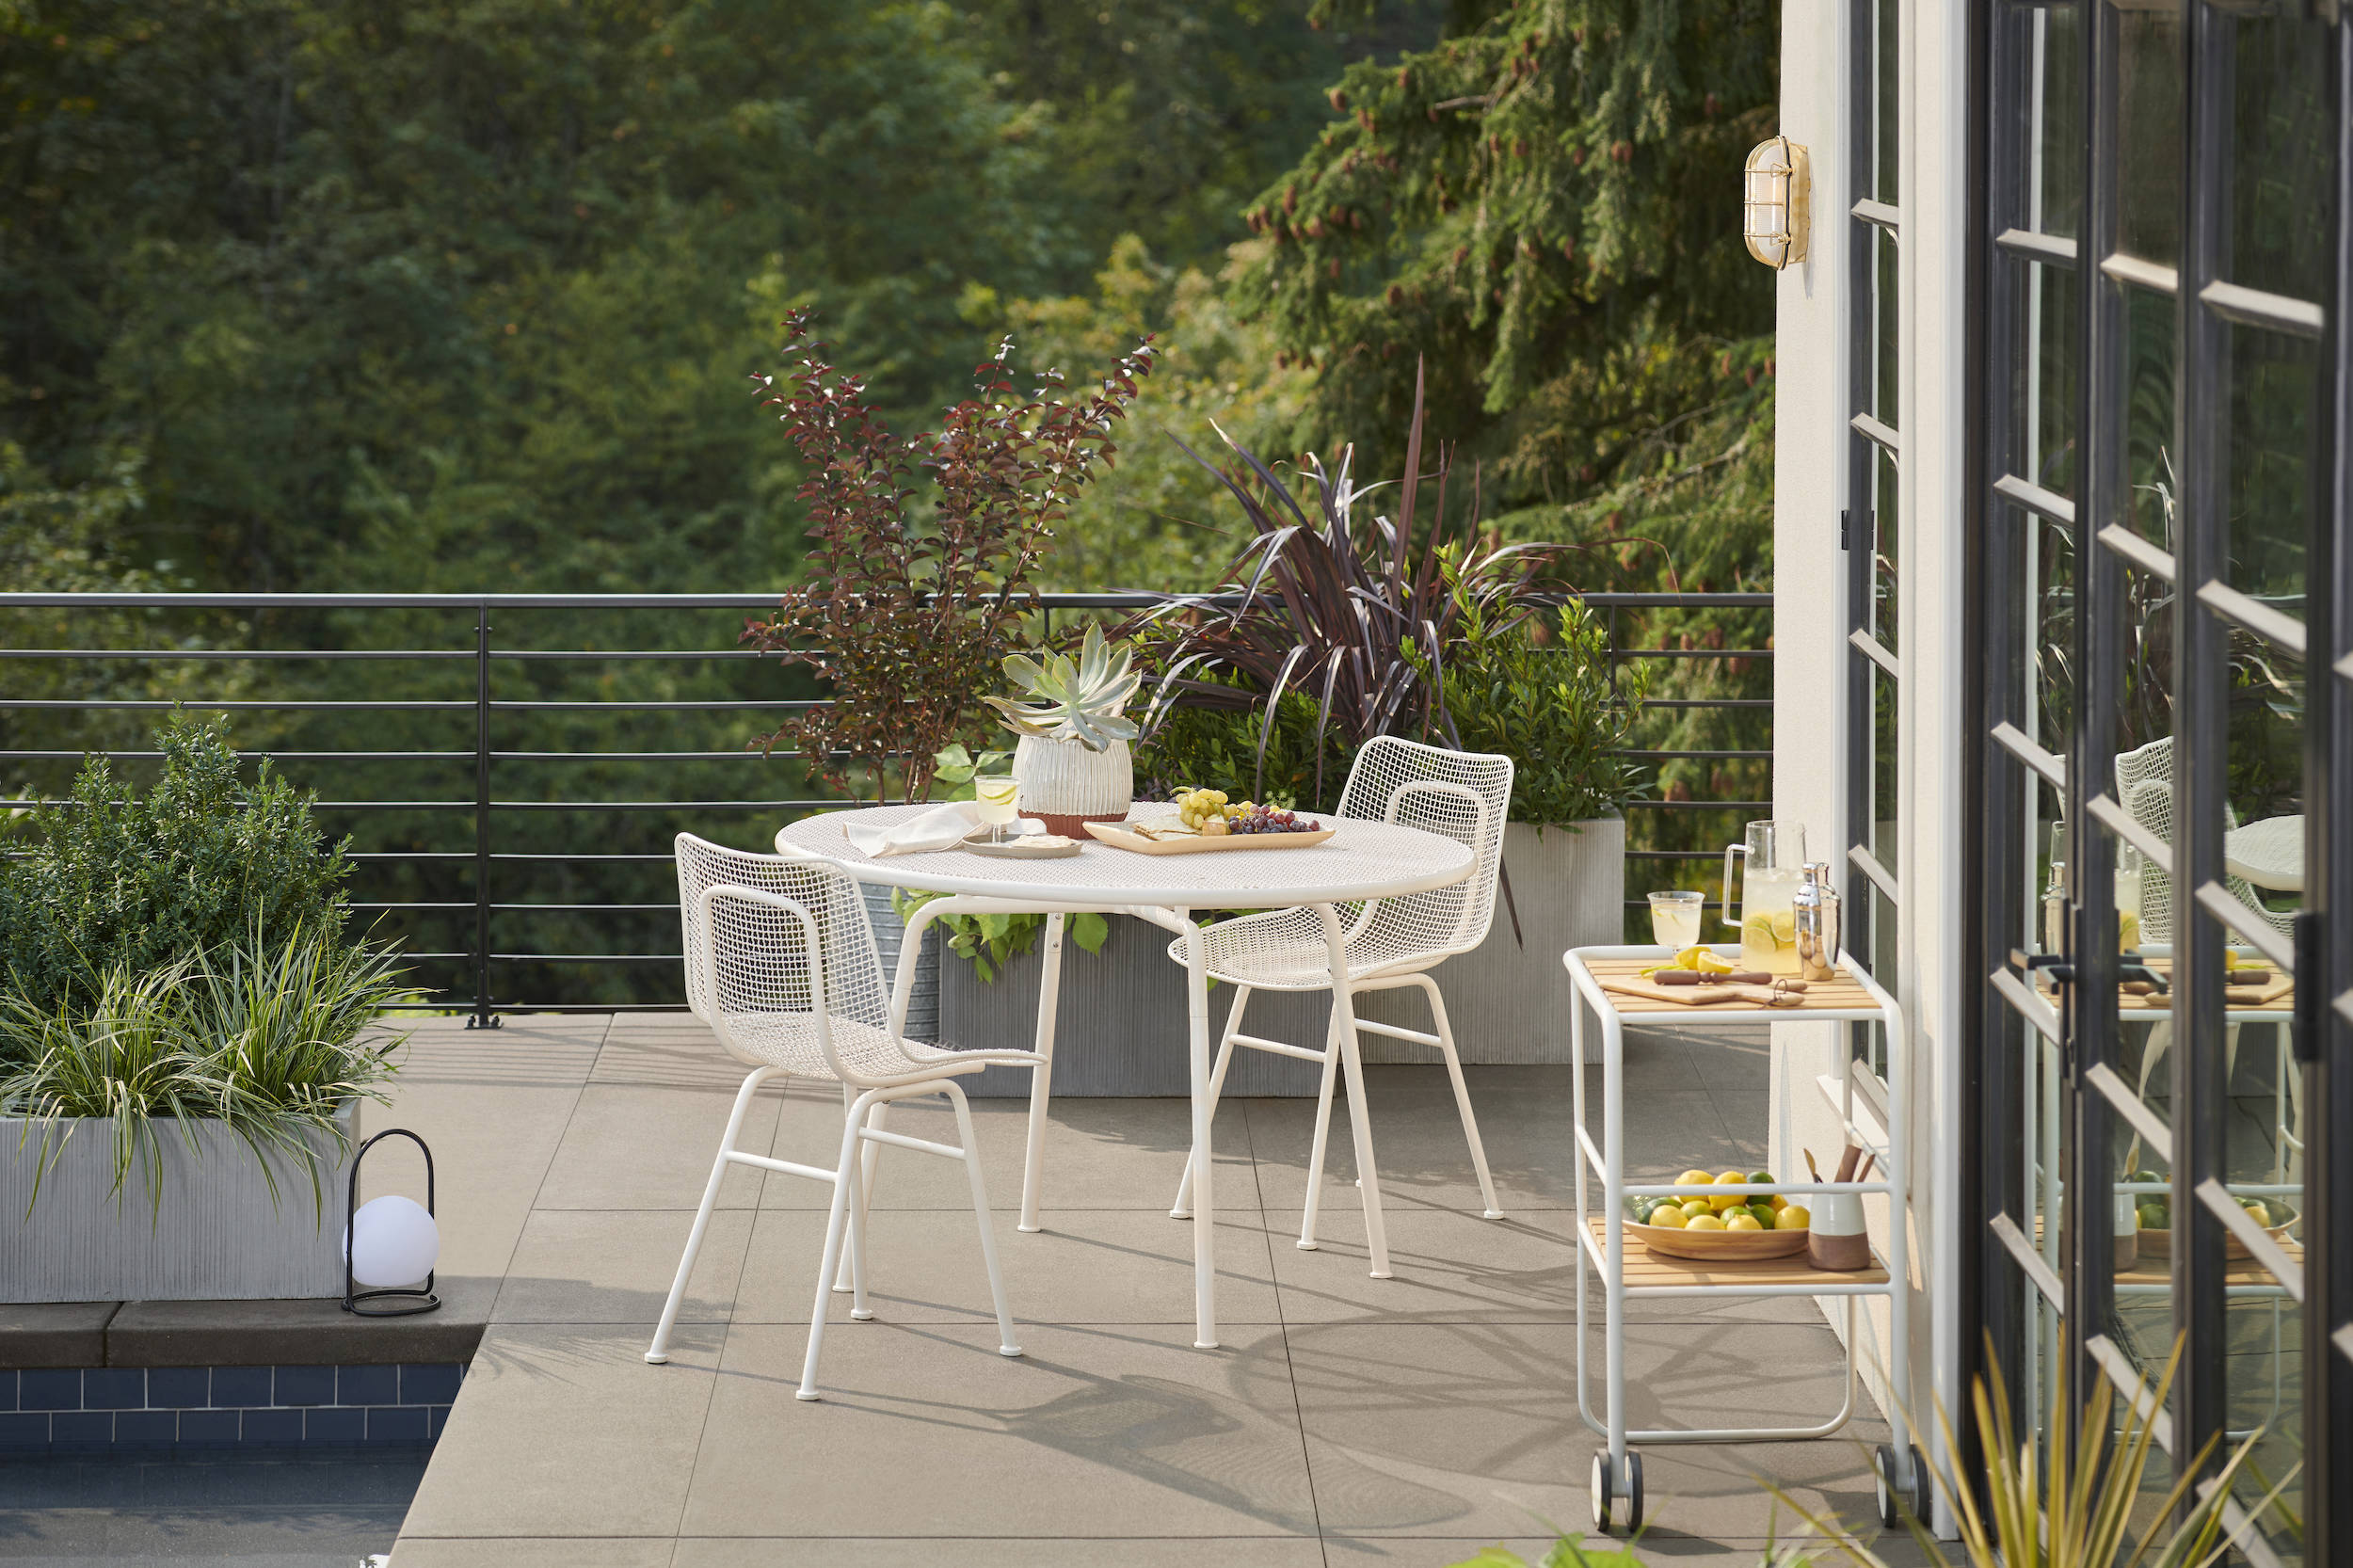 Take dinner (and breakfast, lunch, and happy hour) outdoors. Create a fresh-air dining space you'll use all season long with the midcentury-inspired Prineville Outdoor Dining Collection, including the Prineville Table ($699) and Prineville Arm Chairs ($399 each) shown here in white, crafted with sturdy wrought-iron mesh and powder finished for year-round durability.